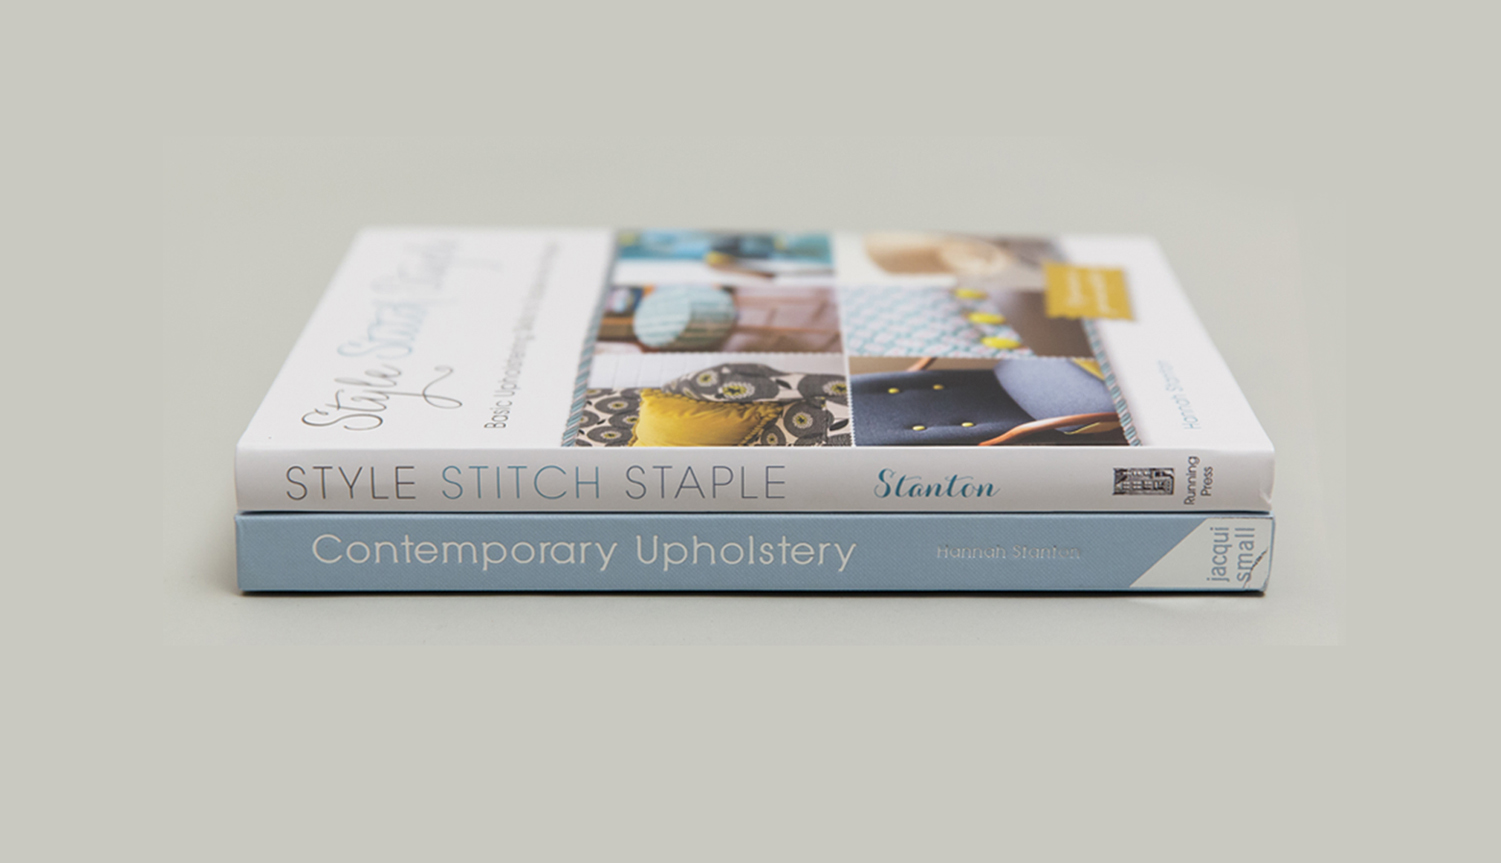 Hannah Stanton, Contemporary Upholstery, Style, Stitch, Staple, Jacqui Small Publishing, Running Press